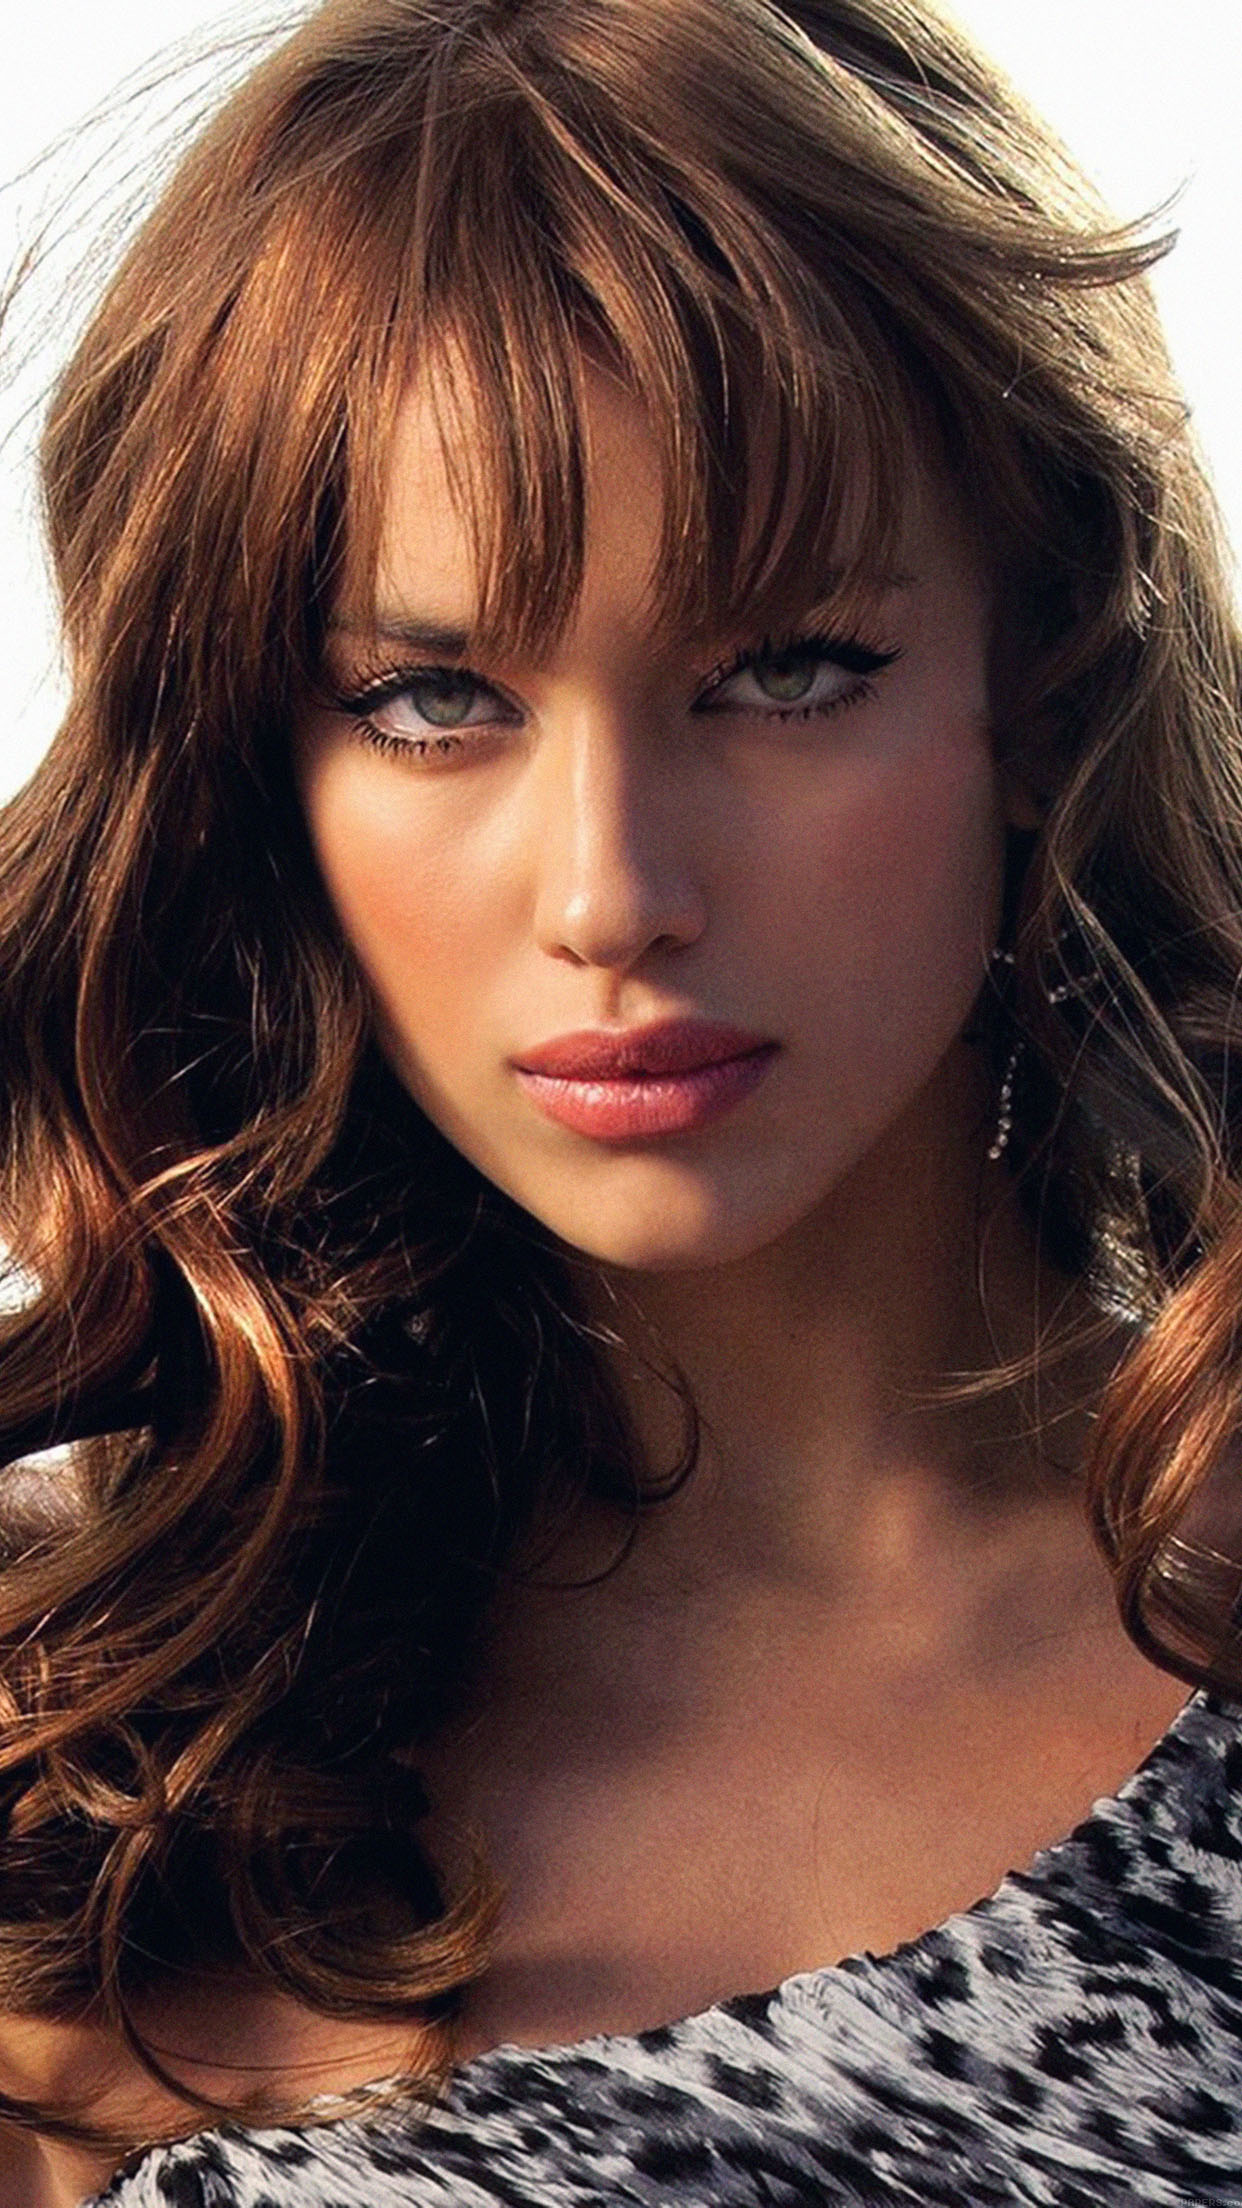 wallpaper irina shayk girl face sexy android wallpaper android hd wallpapers